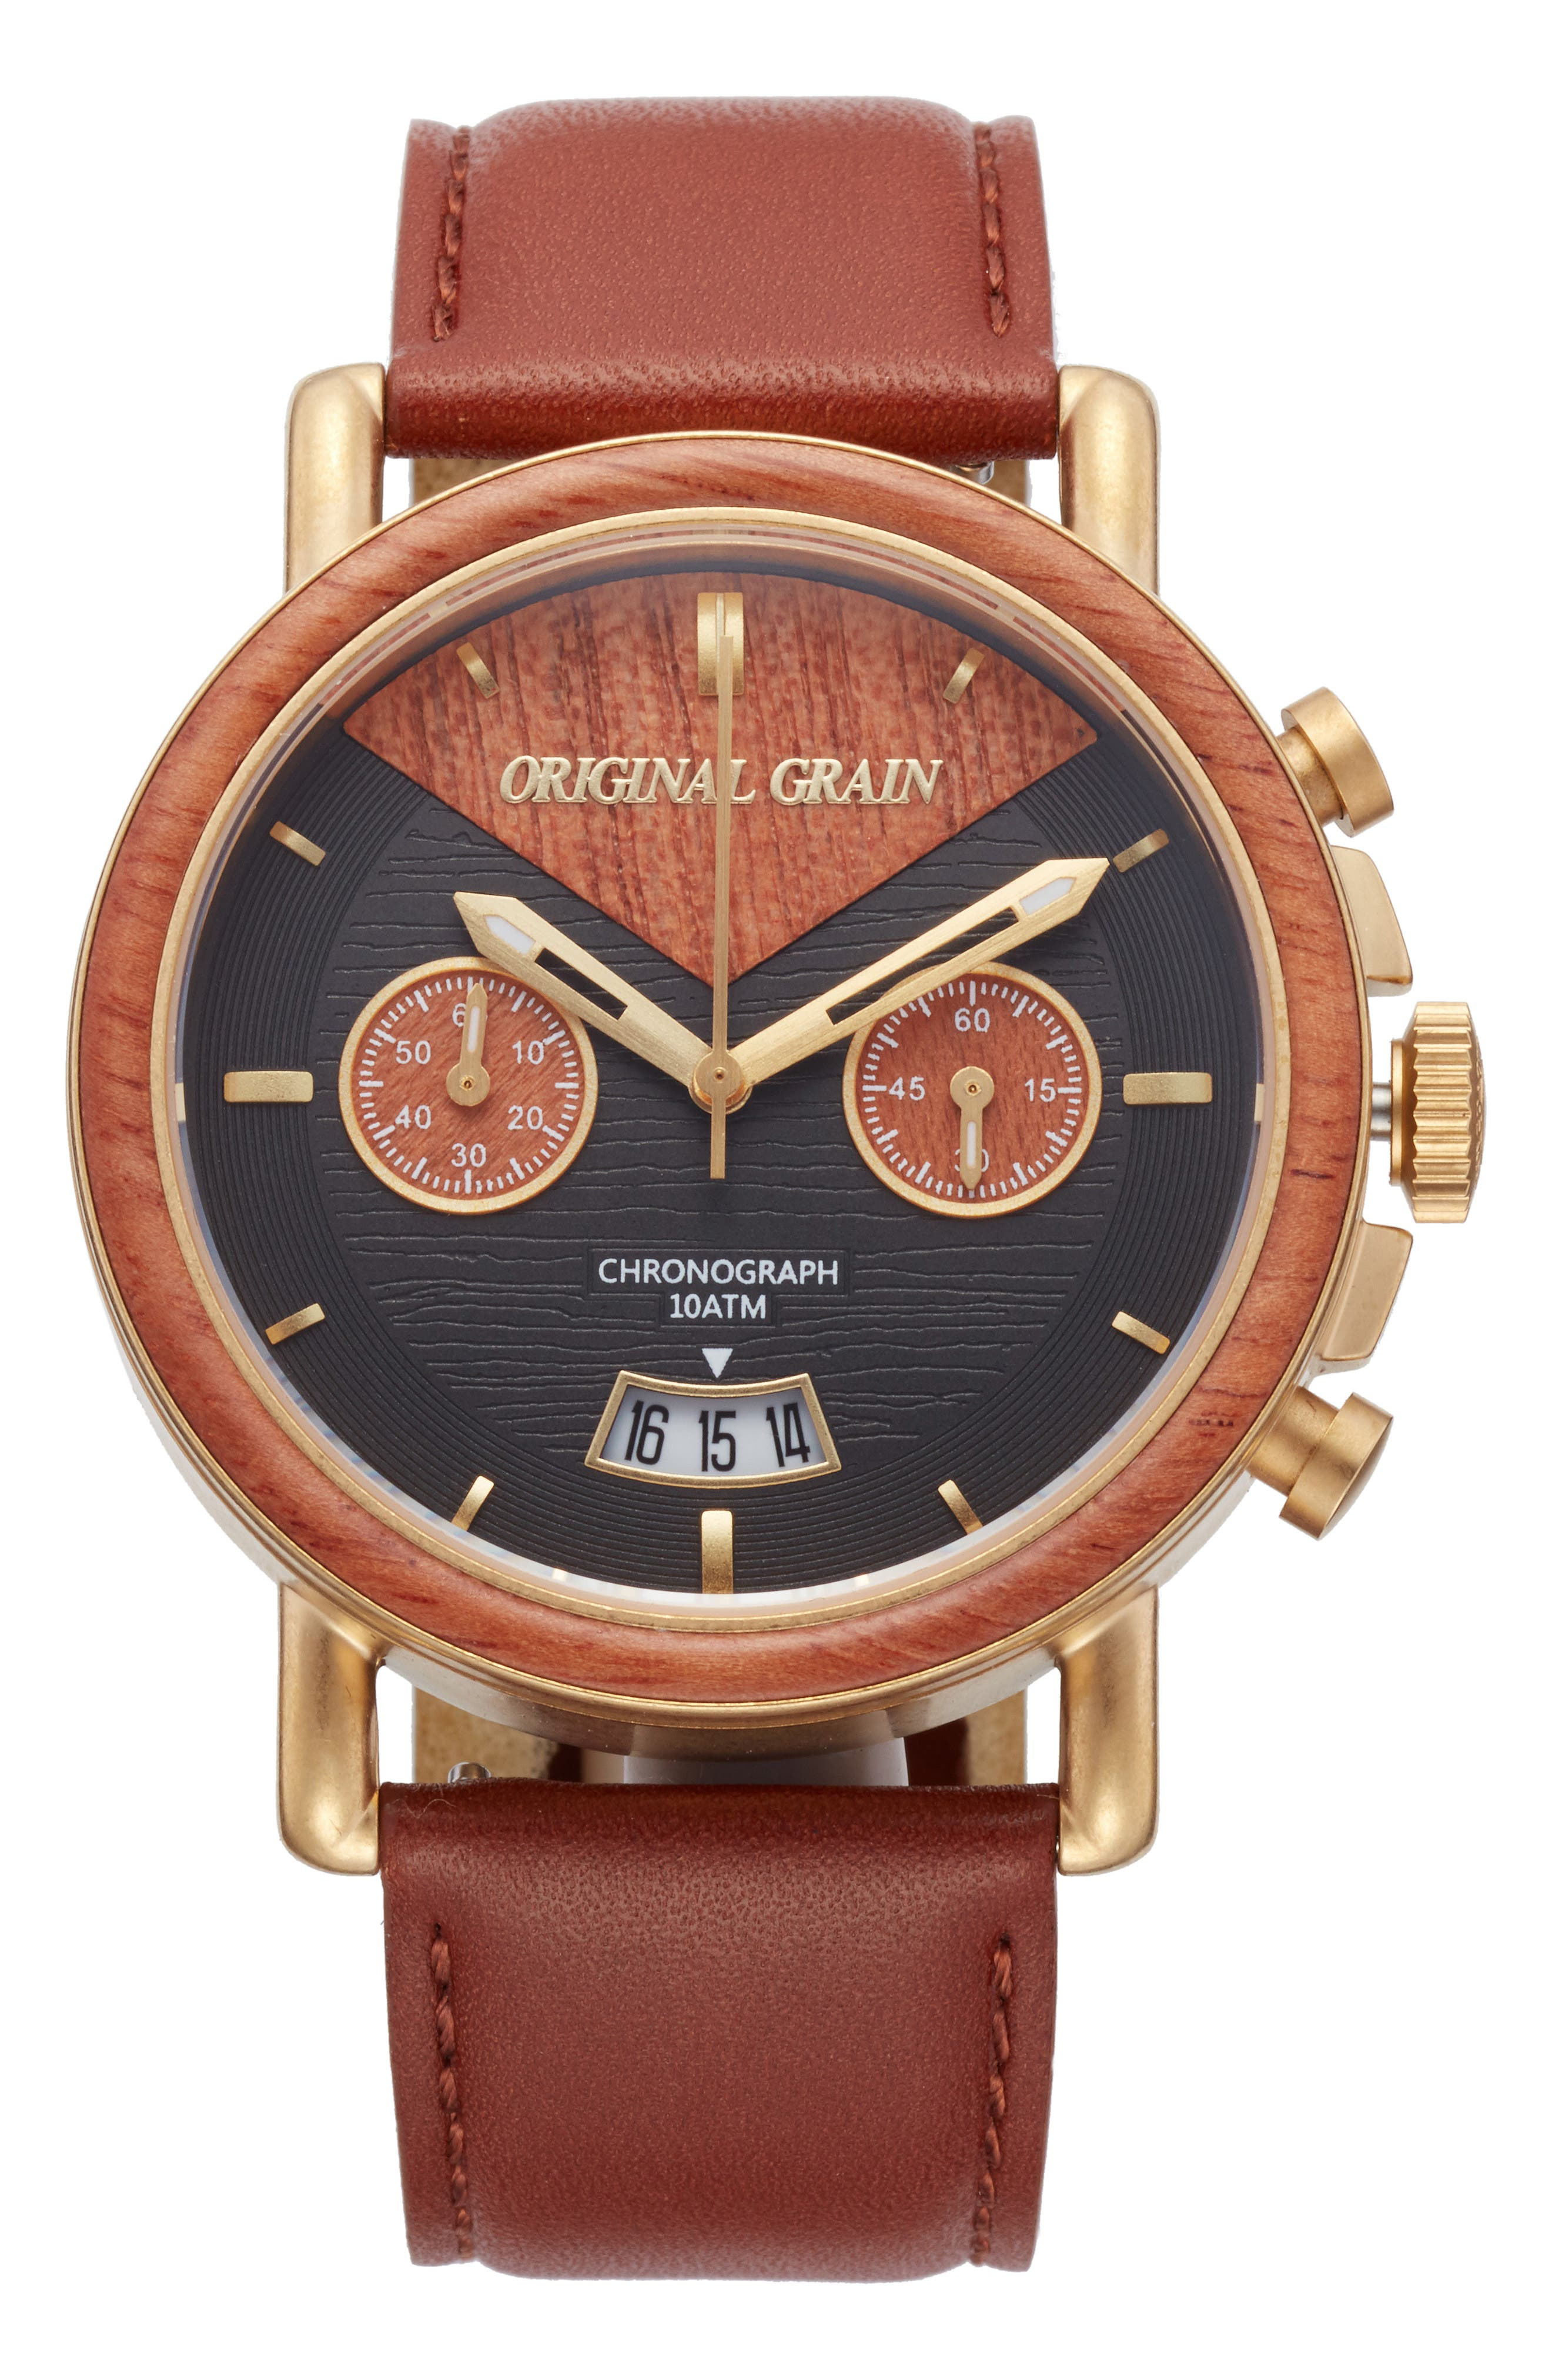 Main Image - Original Grain Alterra Chronograph Leather Strap Watch, 44mm